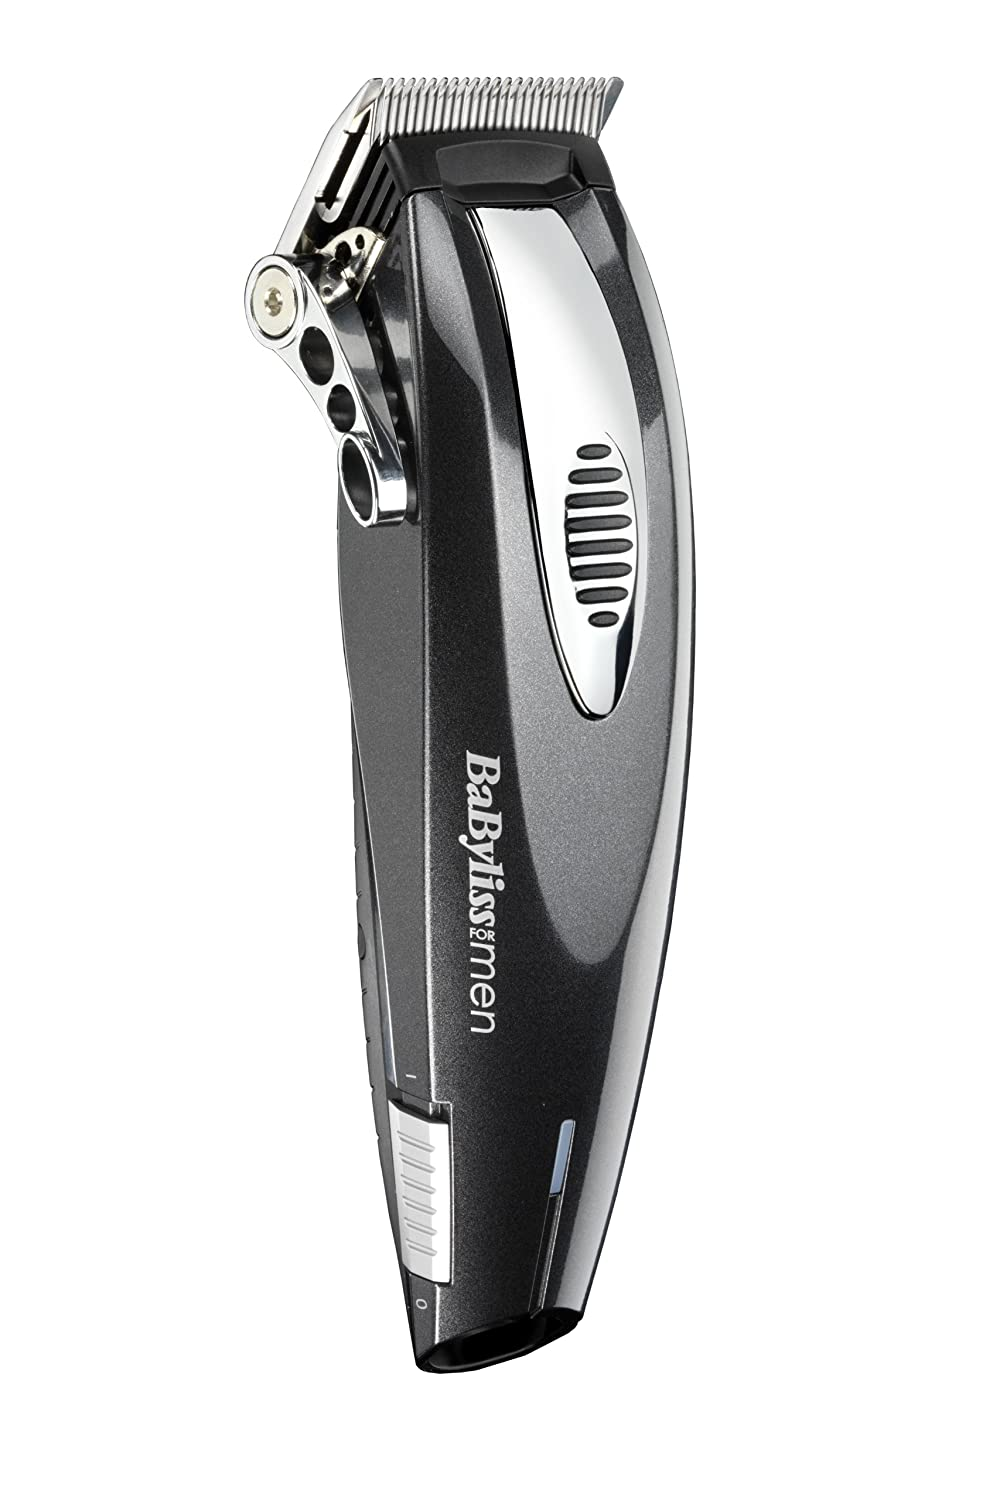 BaByliss for Men Super Hair Clipper The Conair Group Ltd 7475U